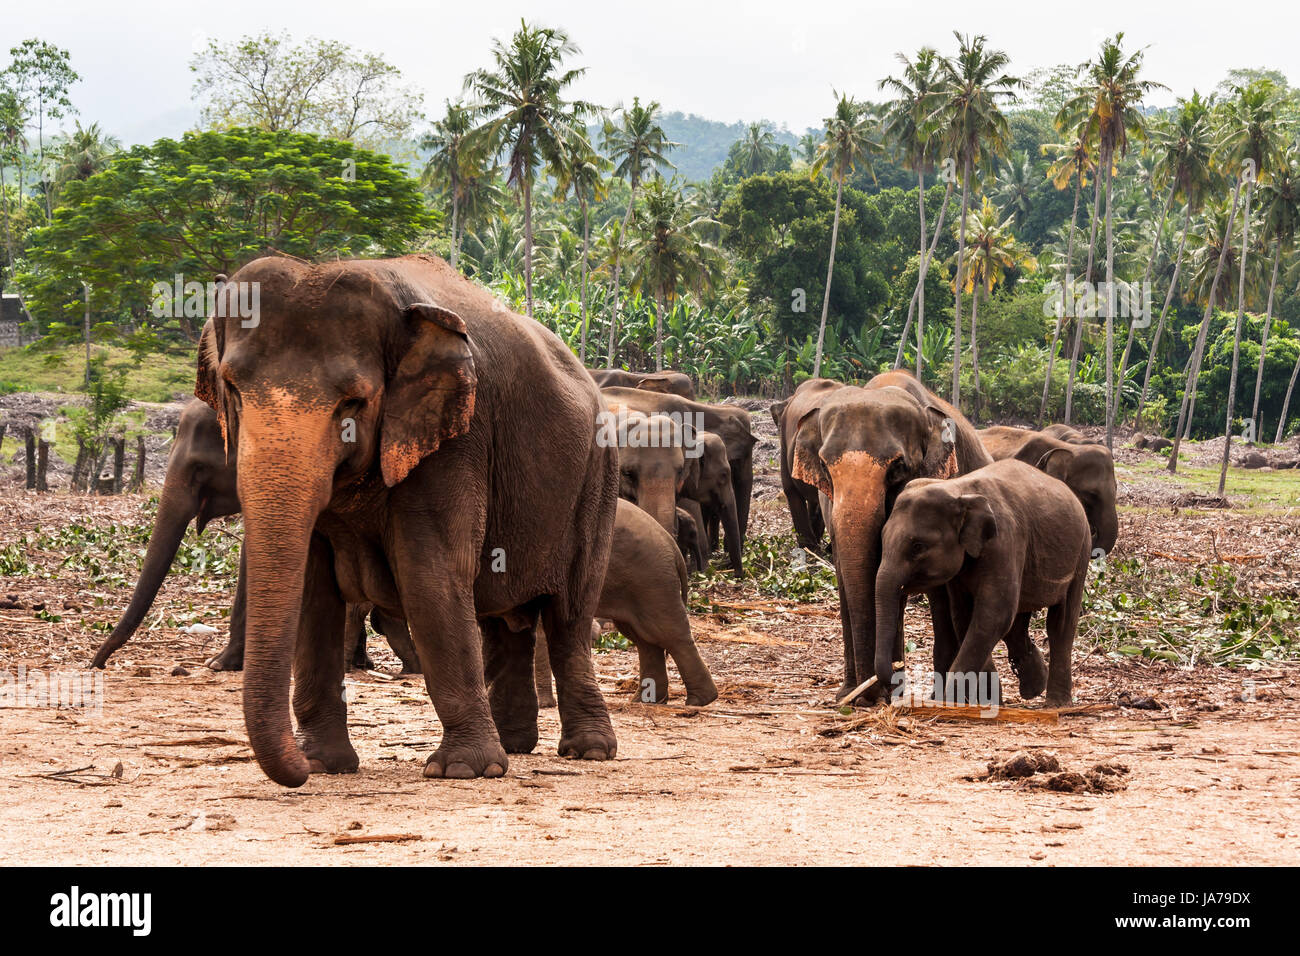 elephants - Stock Image